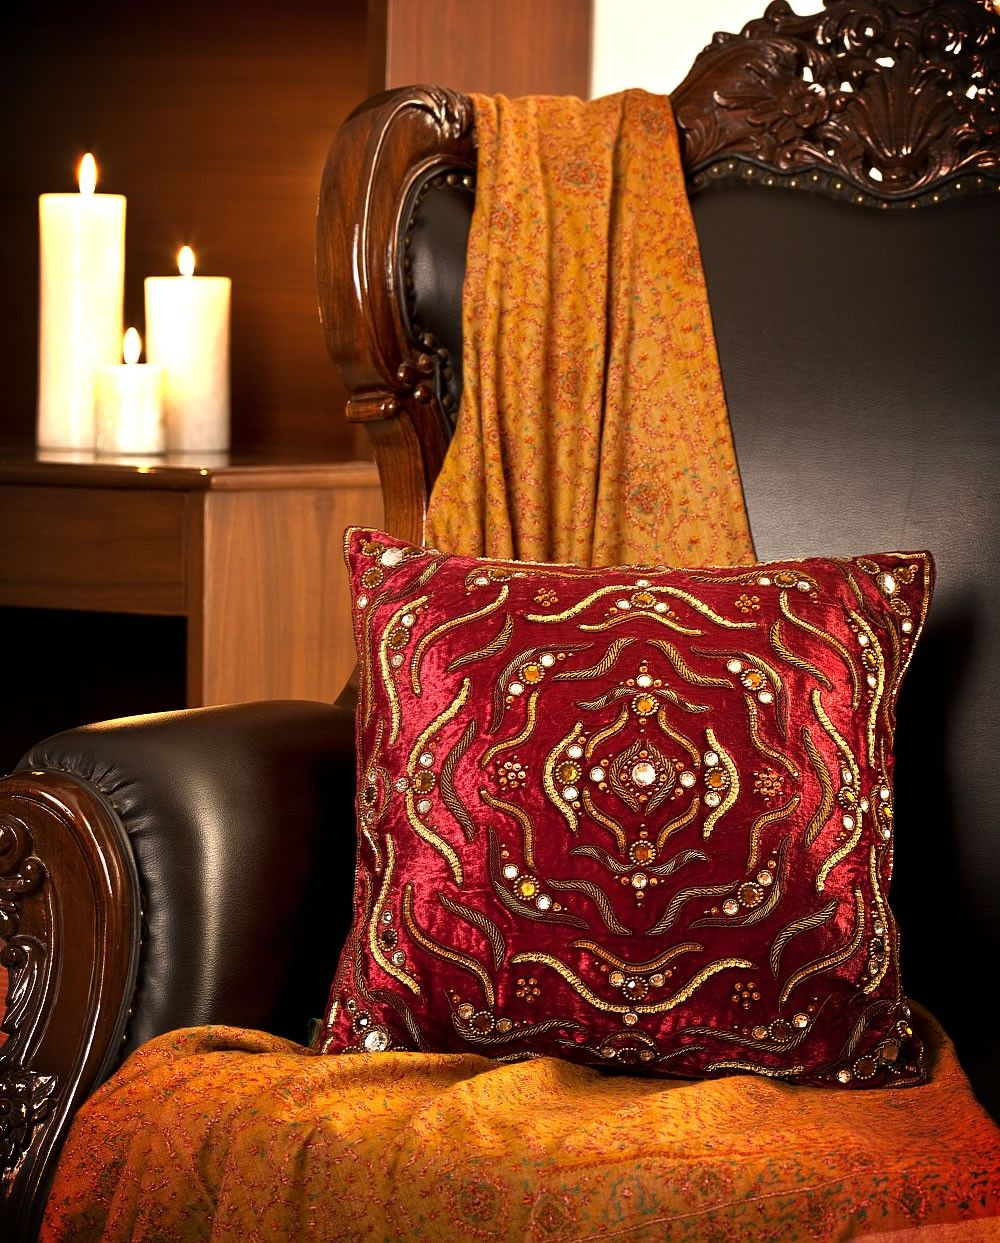 Maroon decorative Velvet cushion with embroidery